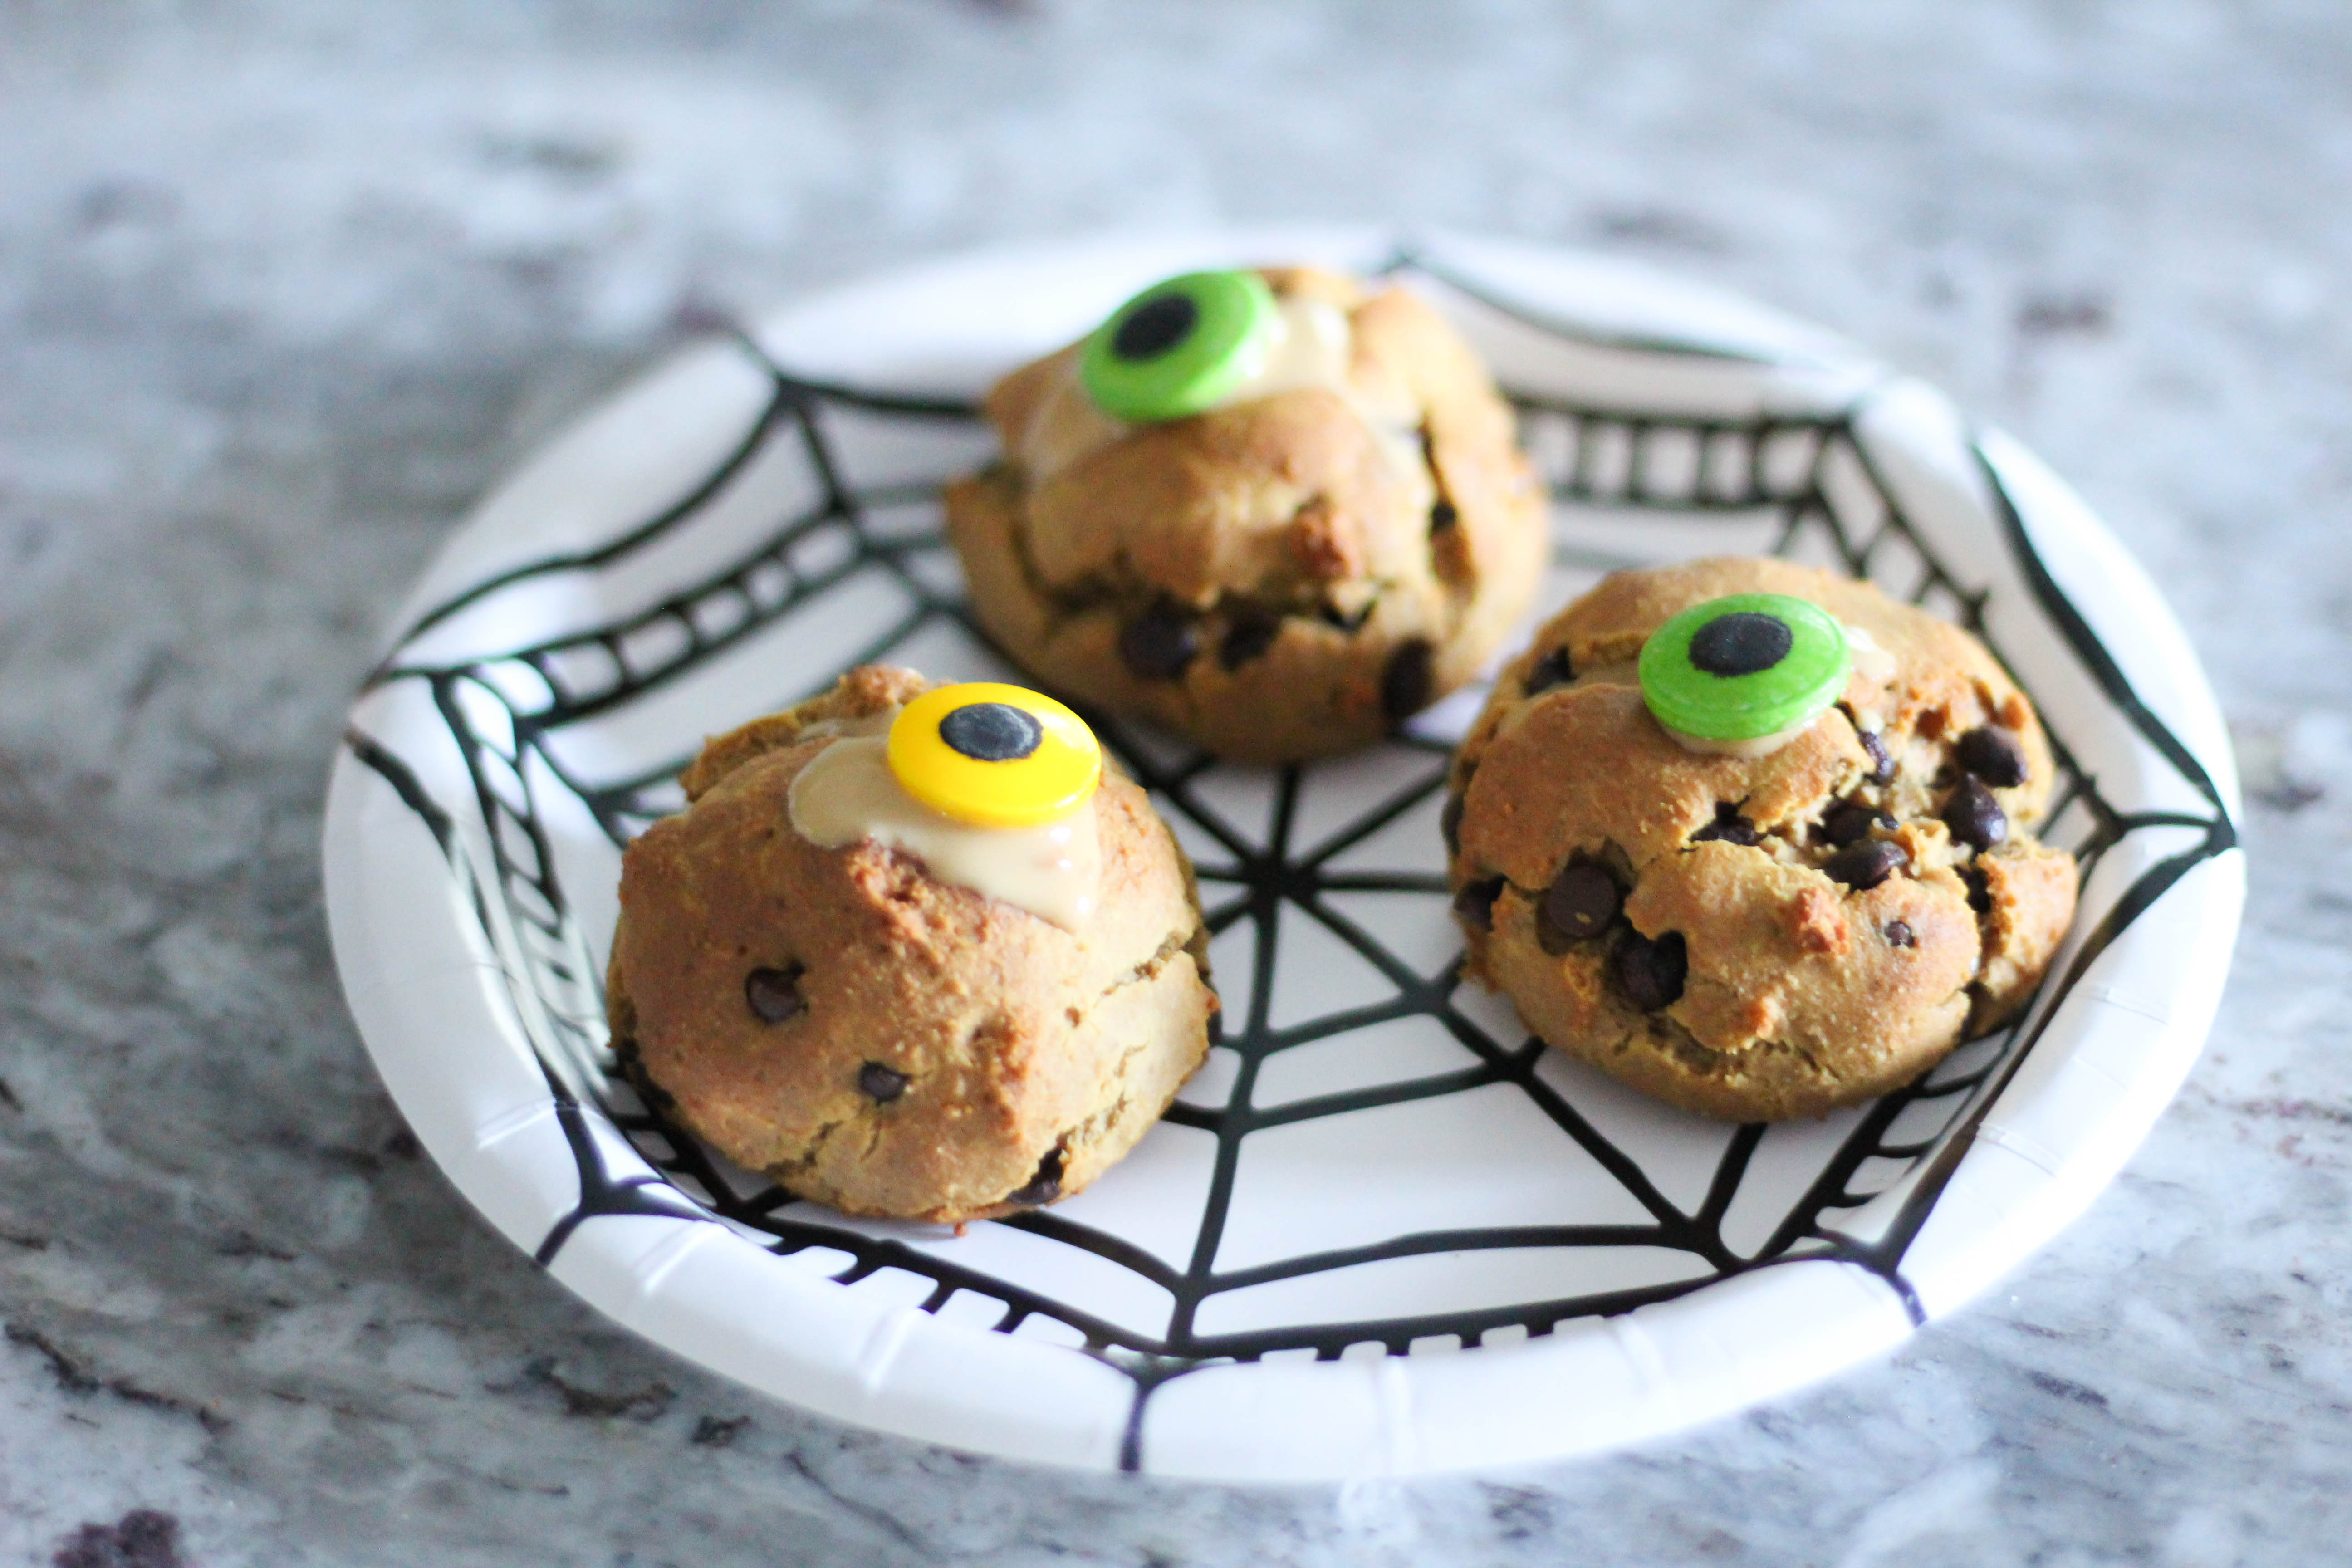 Spooky Chocolate Chip Peanut Butter Scones -Gluten Free and Vegan